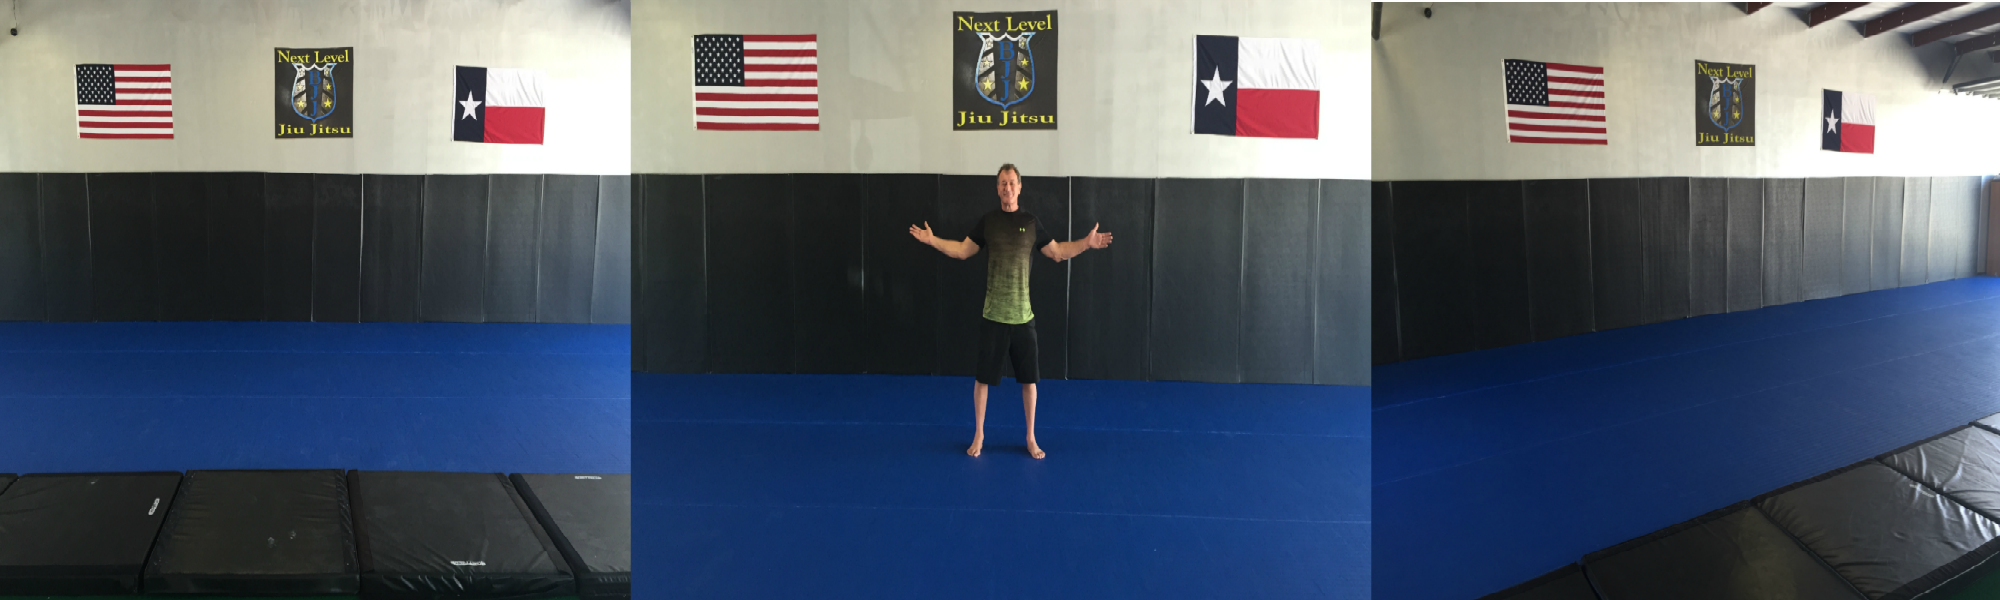 Next Level Jiu JItsu Brazilian Jiu Jitsu Mat Space